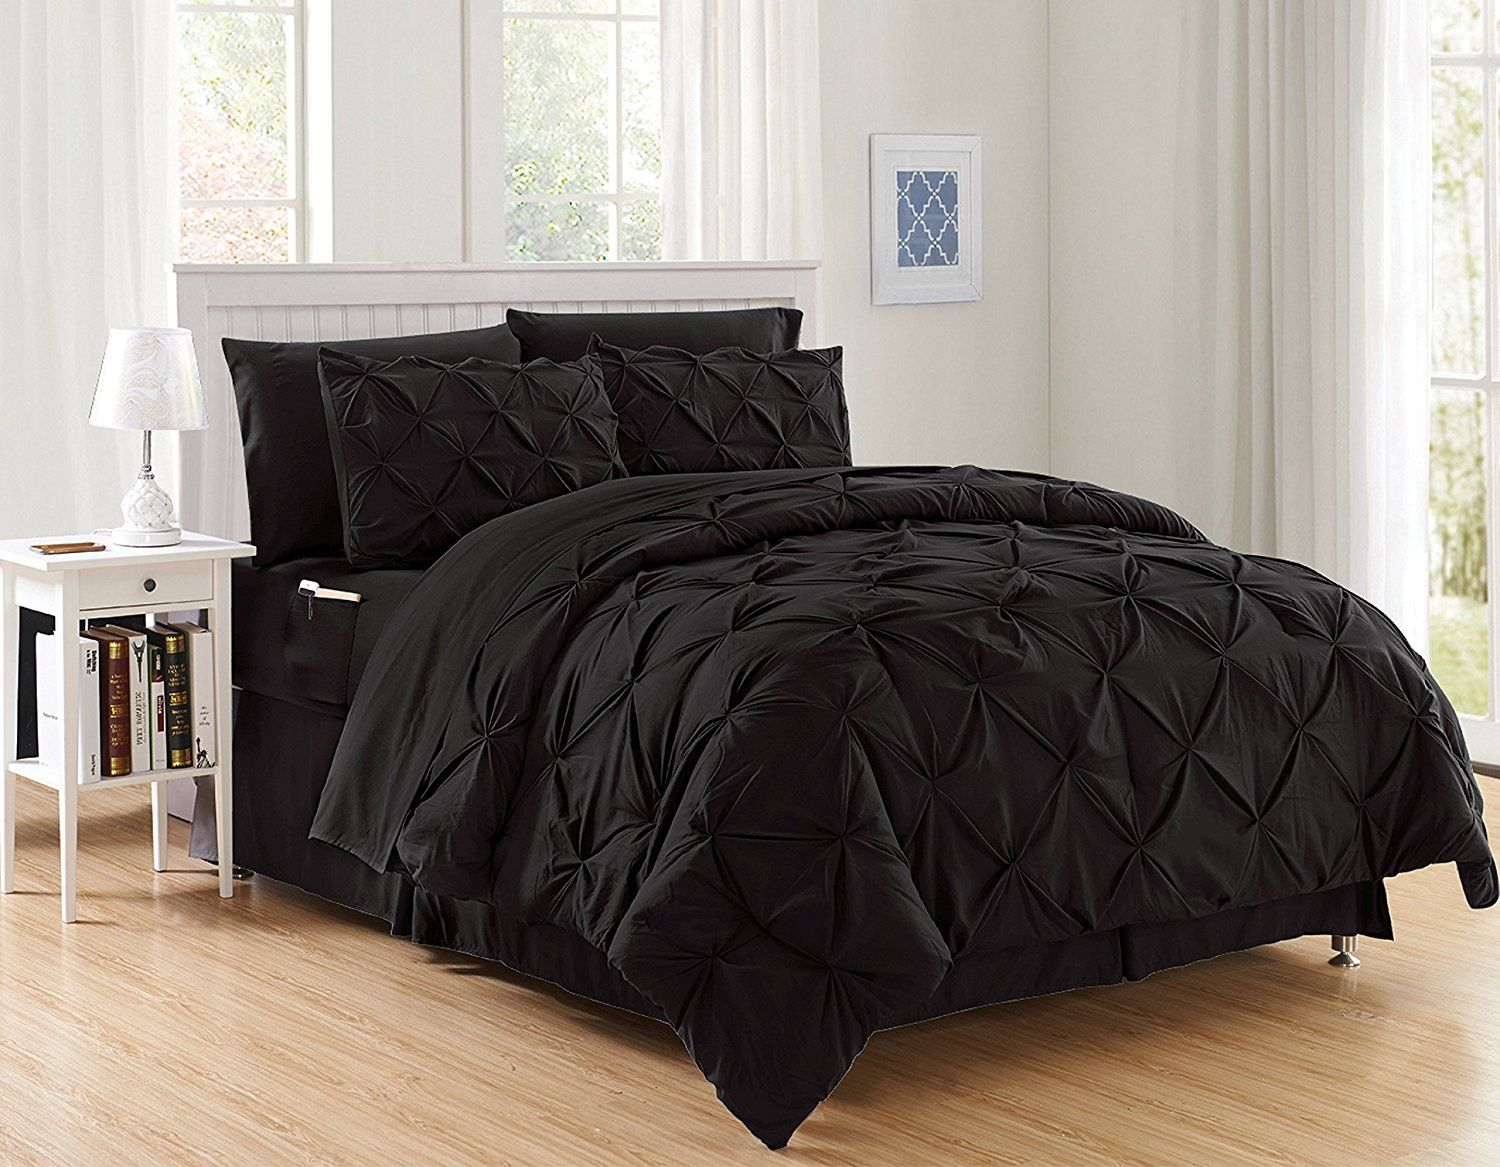 8 Pieces Complete Bed In A Bag Comforter Set Full Queen Black Walmart Com In 2020 Bed Sheet Sets Comforter Sets Luxury Comforter Sets